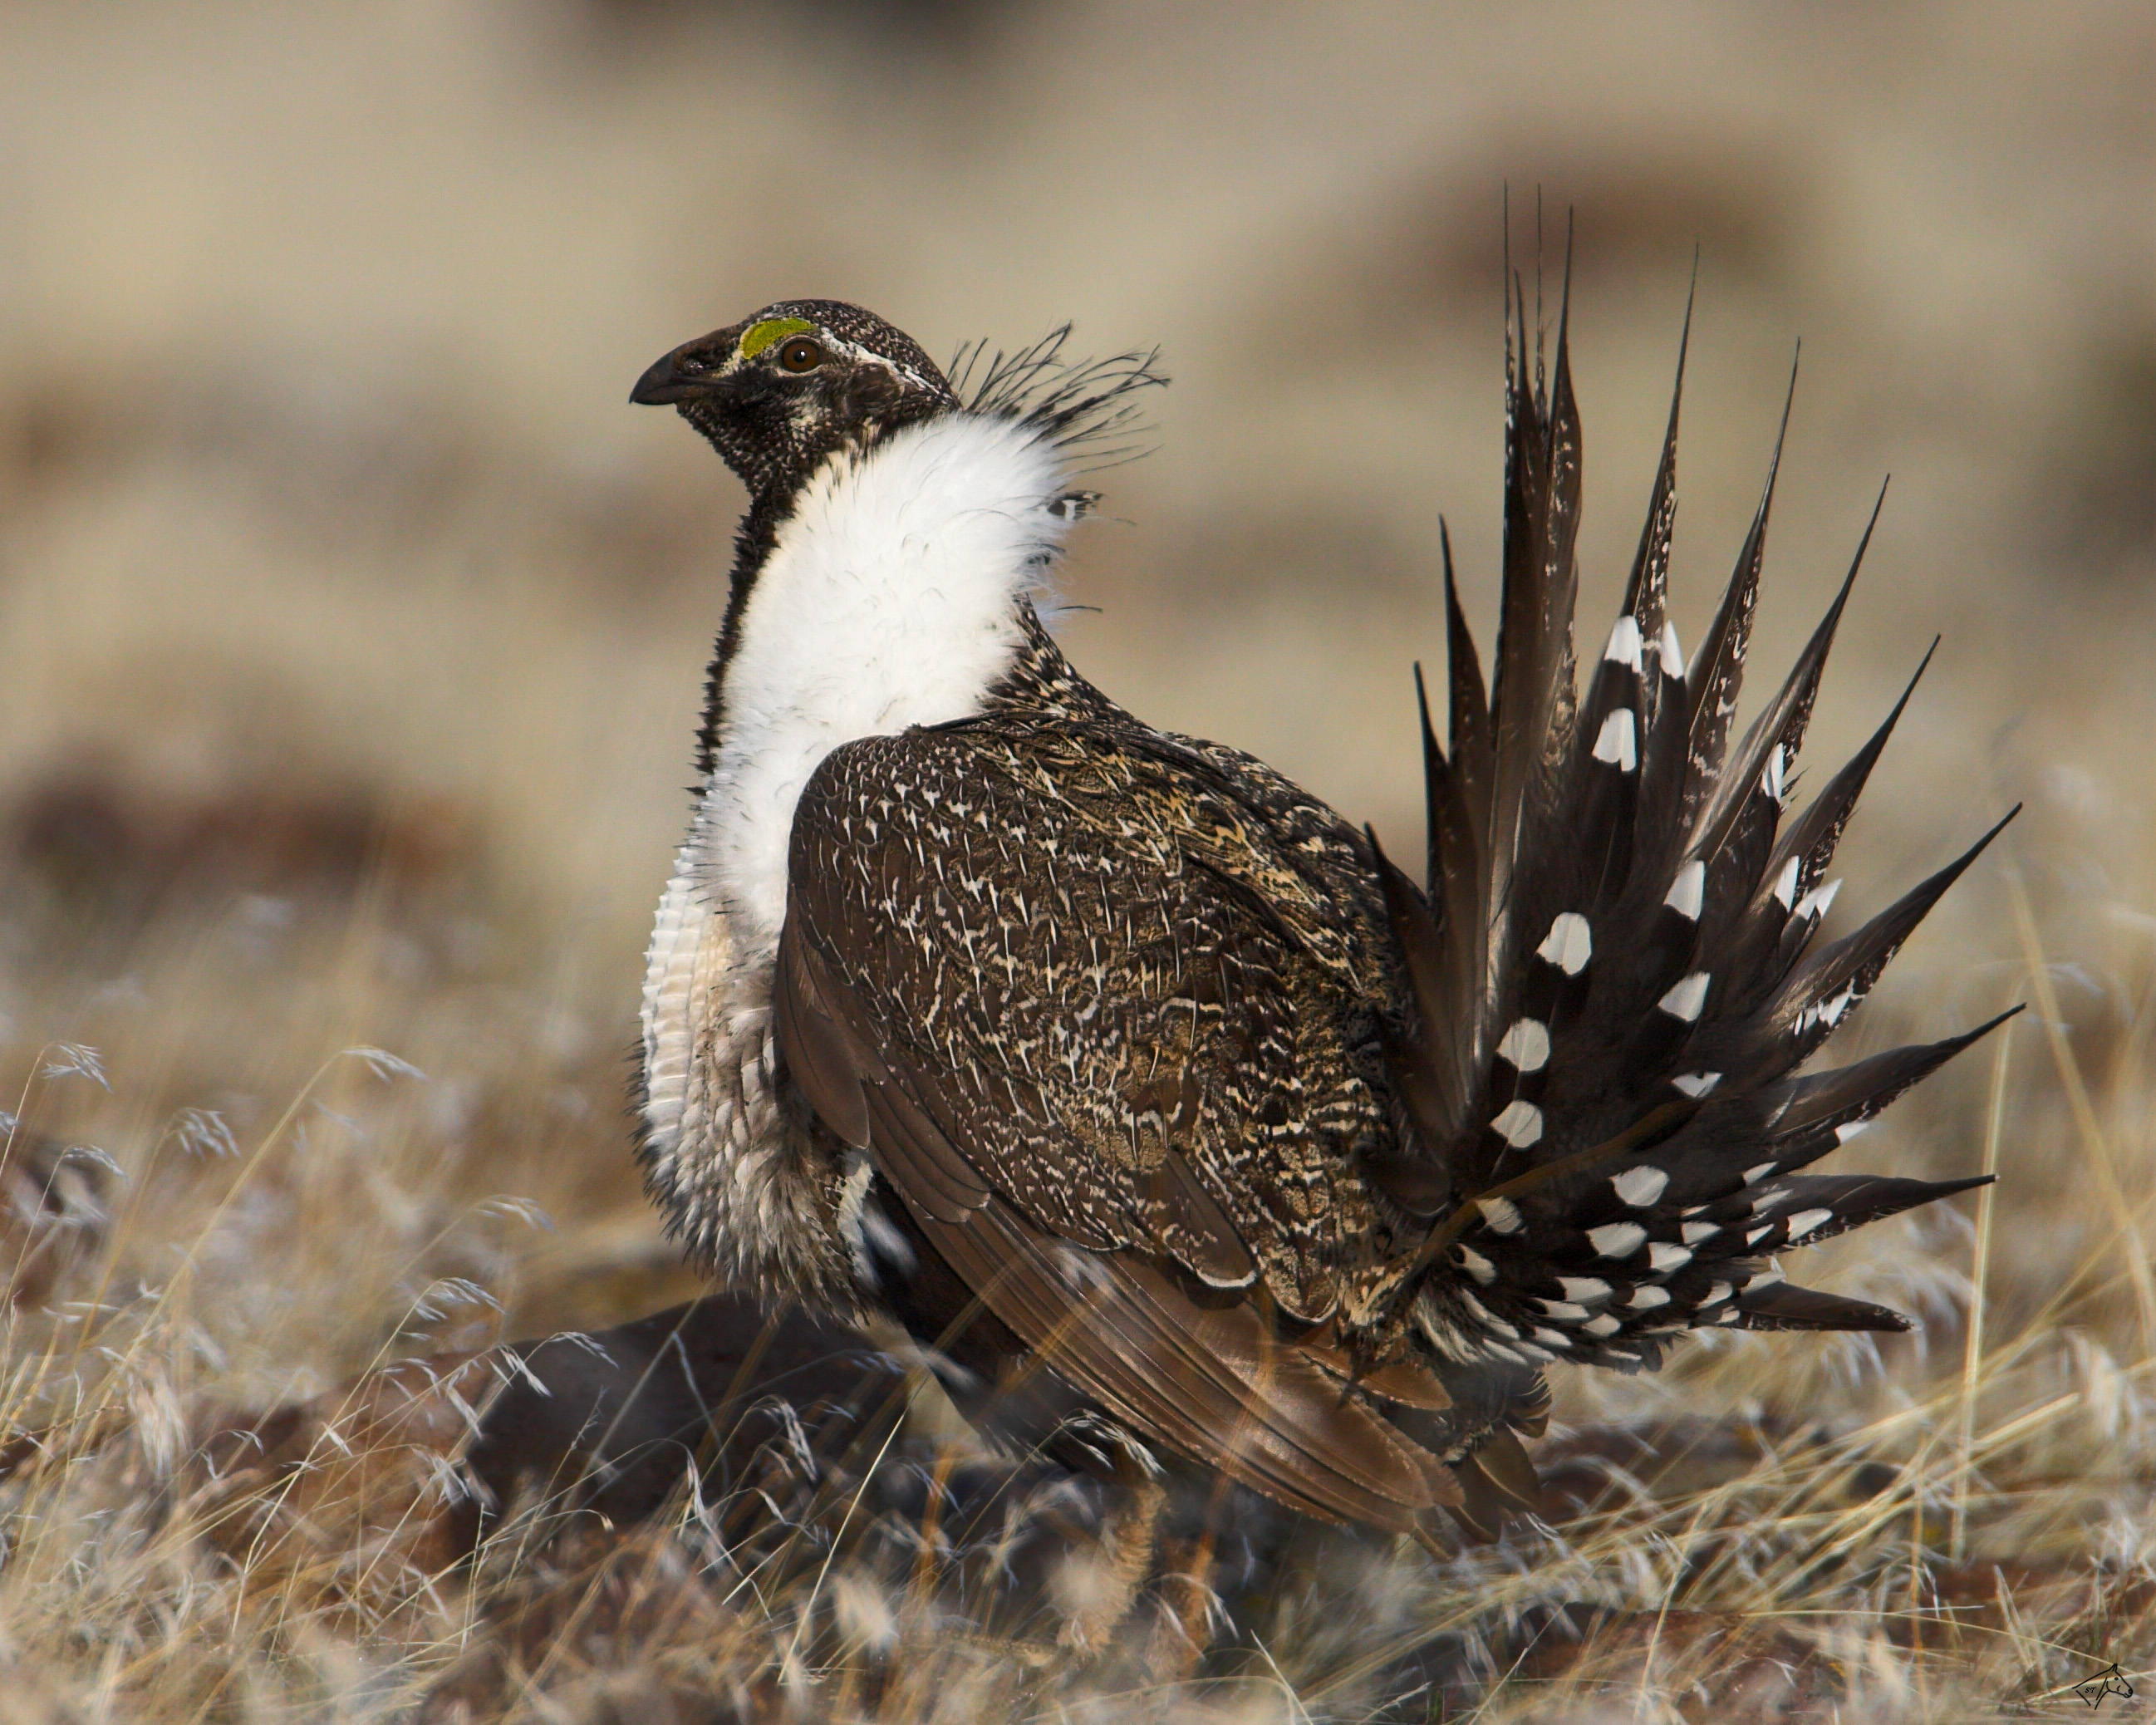 Greater sage-grouse - Wikipedia on squirrel house plan, bird house plan, rabbit house plan, cypress house plan, swan house plan, chicken house plan, pelican house plan, kingfisher house plan, finch house plan, duck house plan,